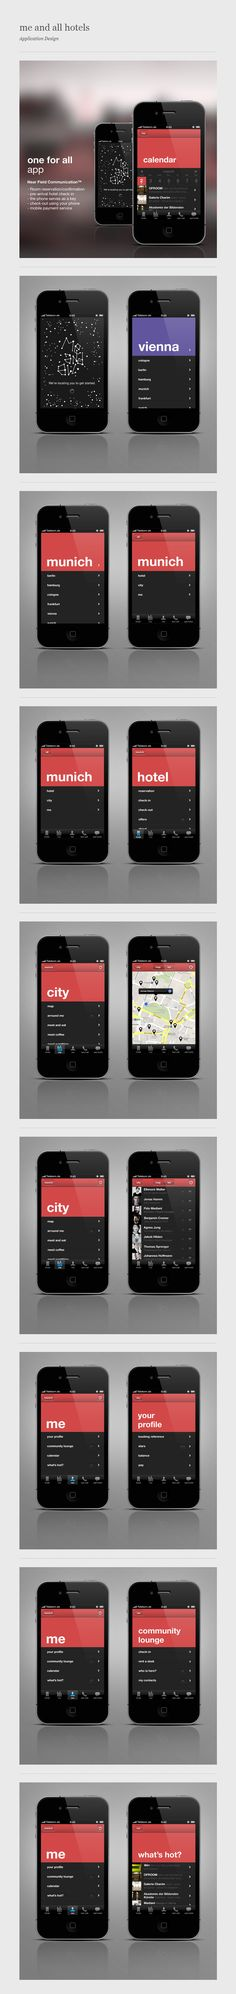 me and all hotels - iPhone App / Conny Naumann